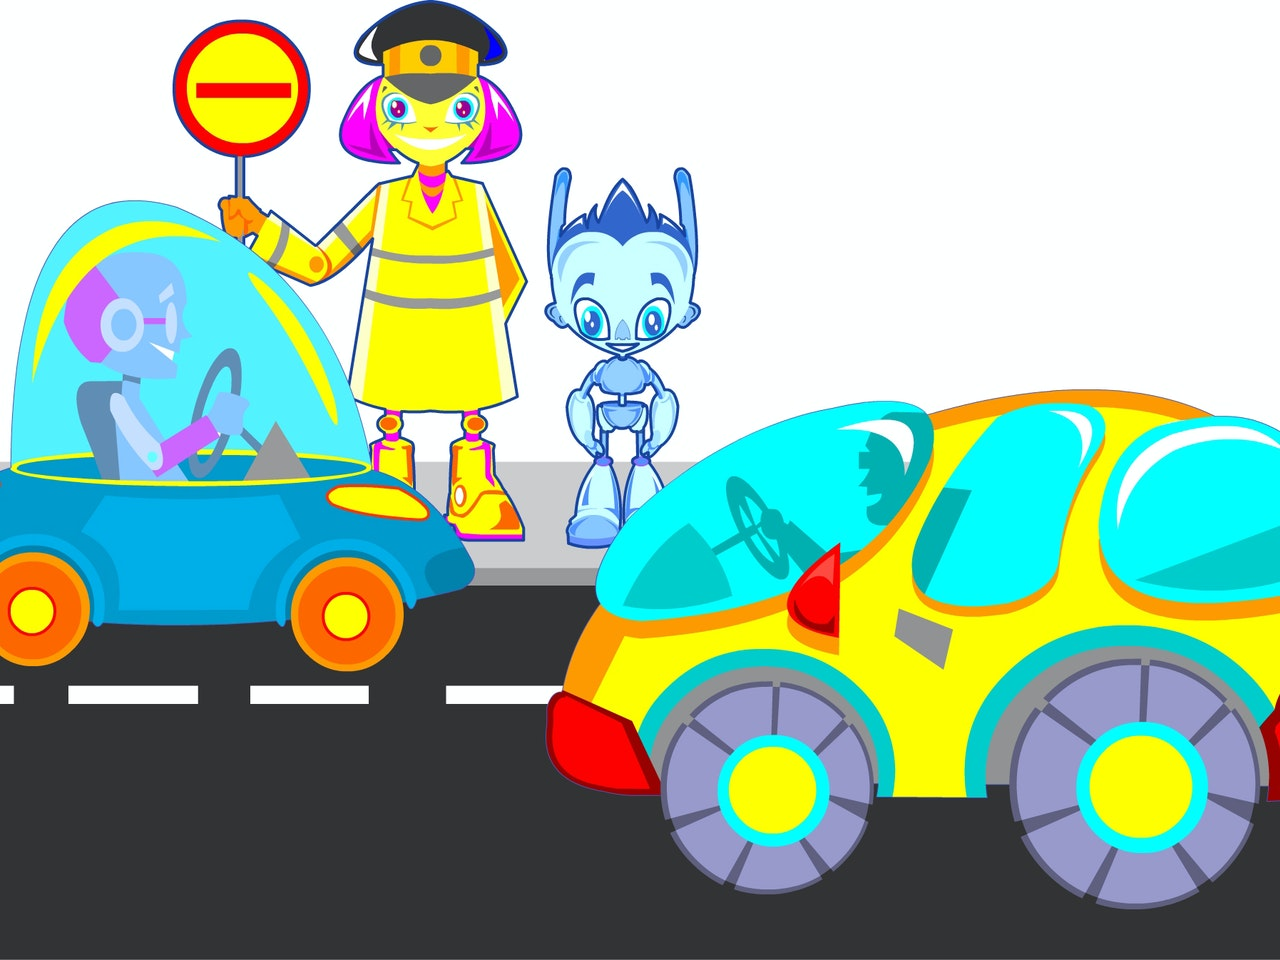 traffic warden cars road safety  droid mech technology smart happy humorous comical colourful graphic cartoon anime